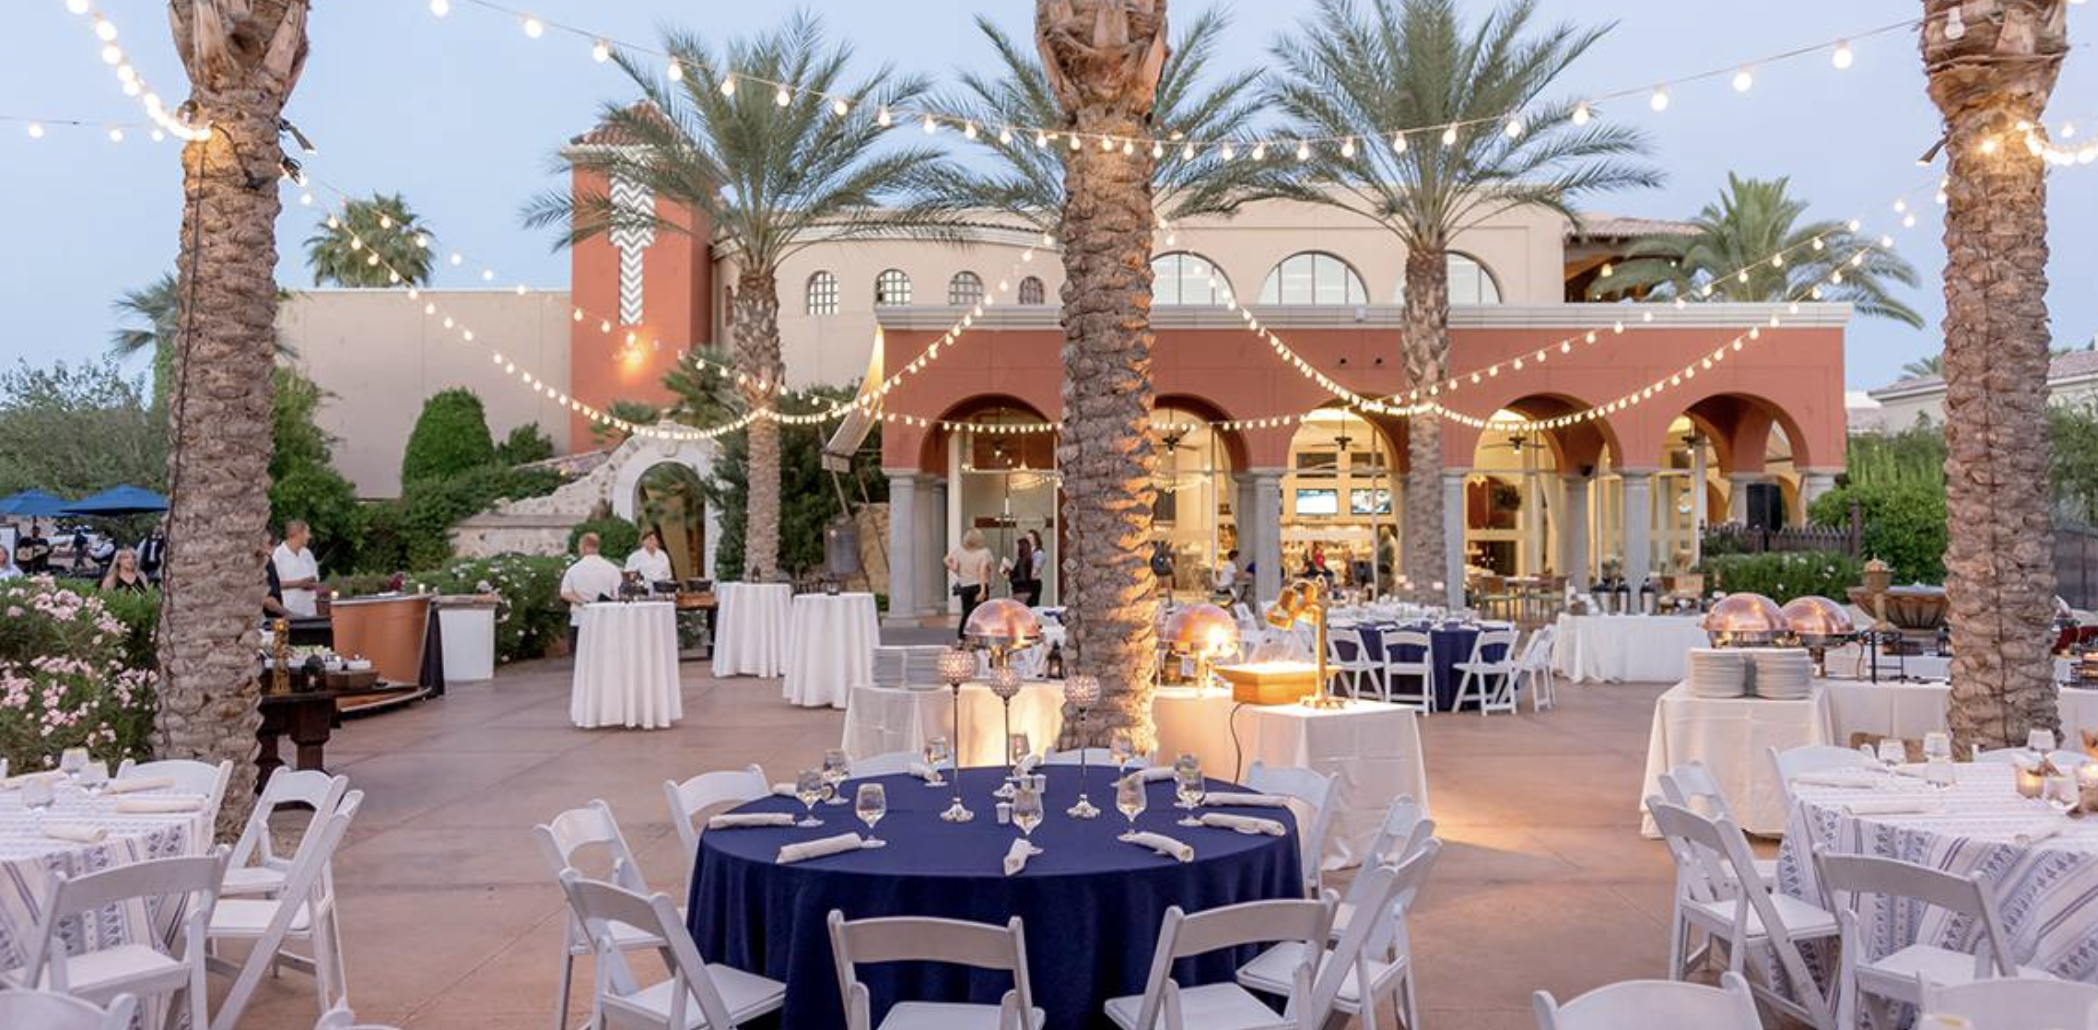 Omni Pool Patio Dinner Tables.png